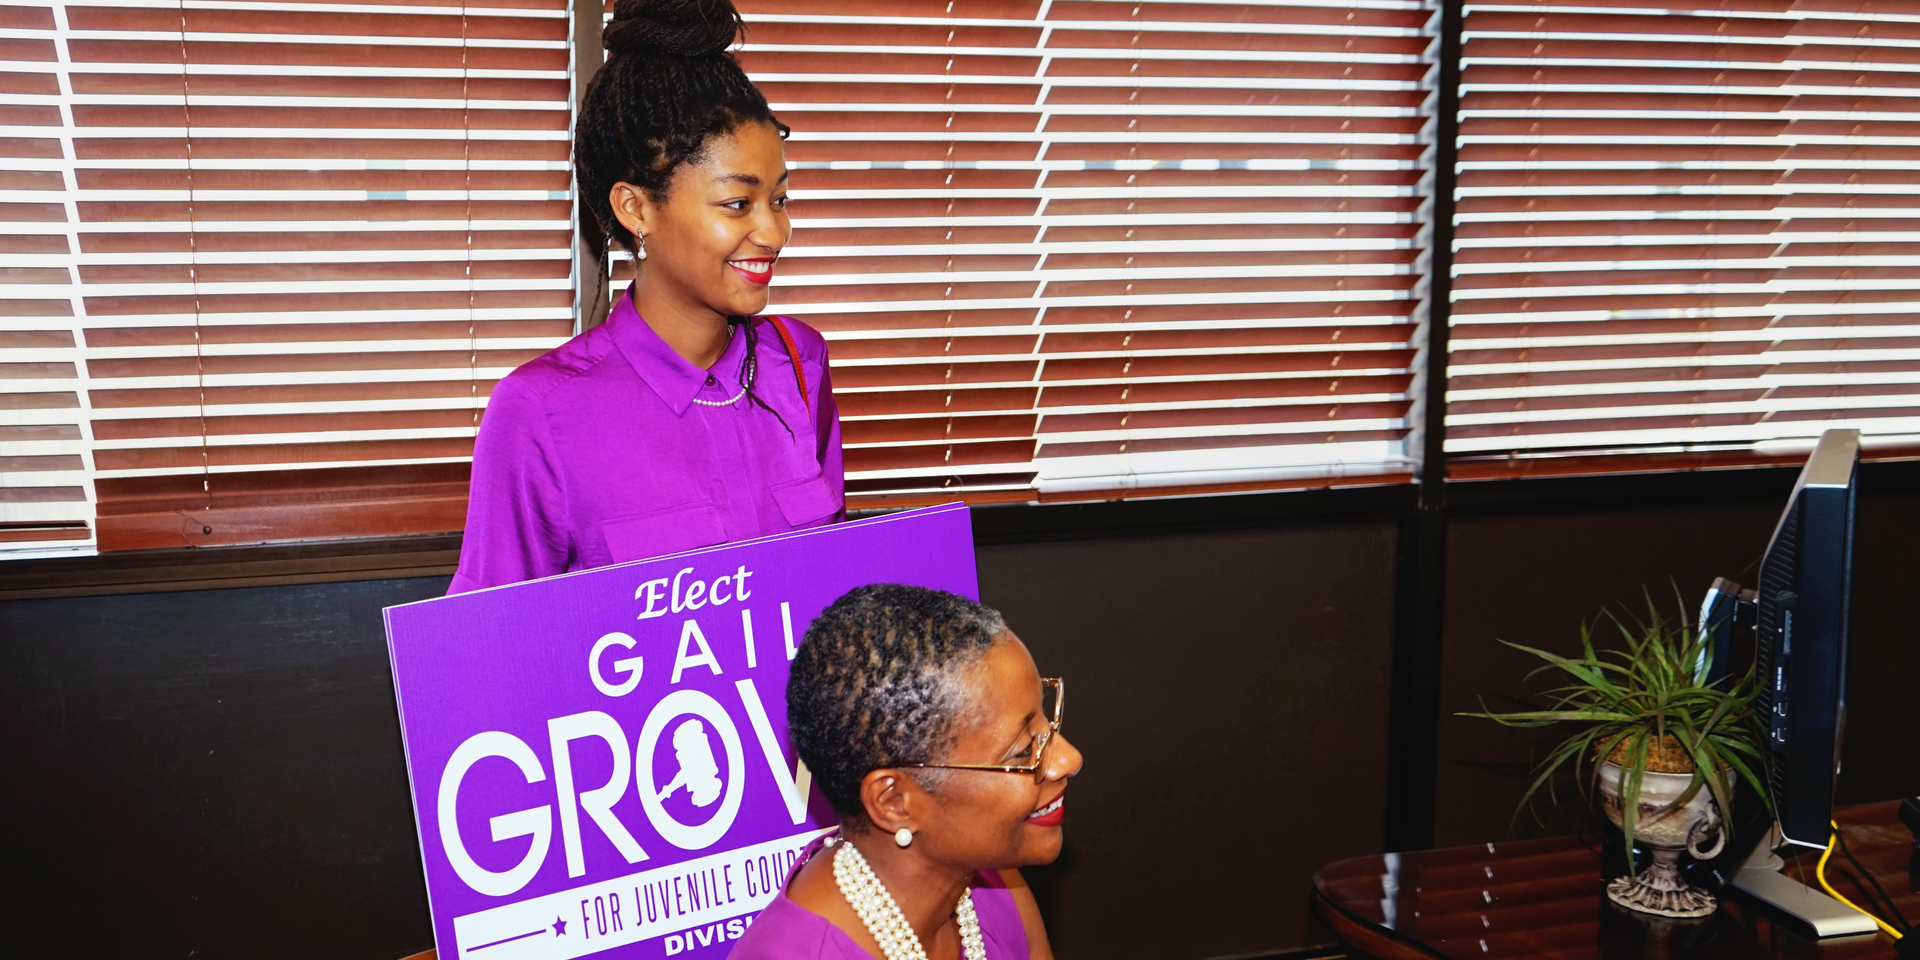 Gail Grover Qualifies for Candidacy